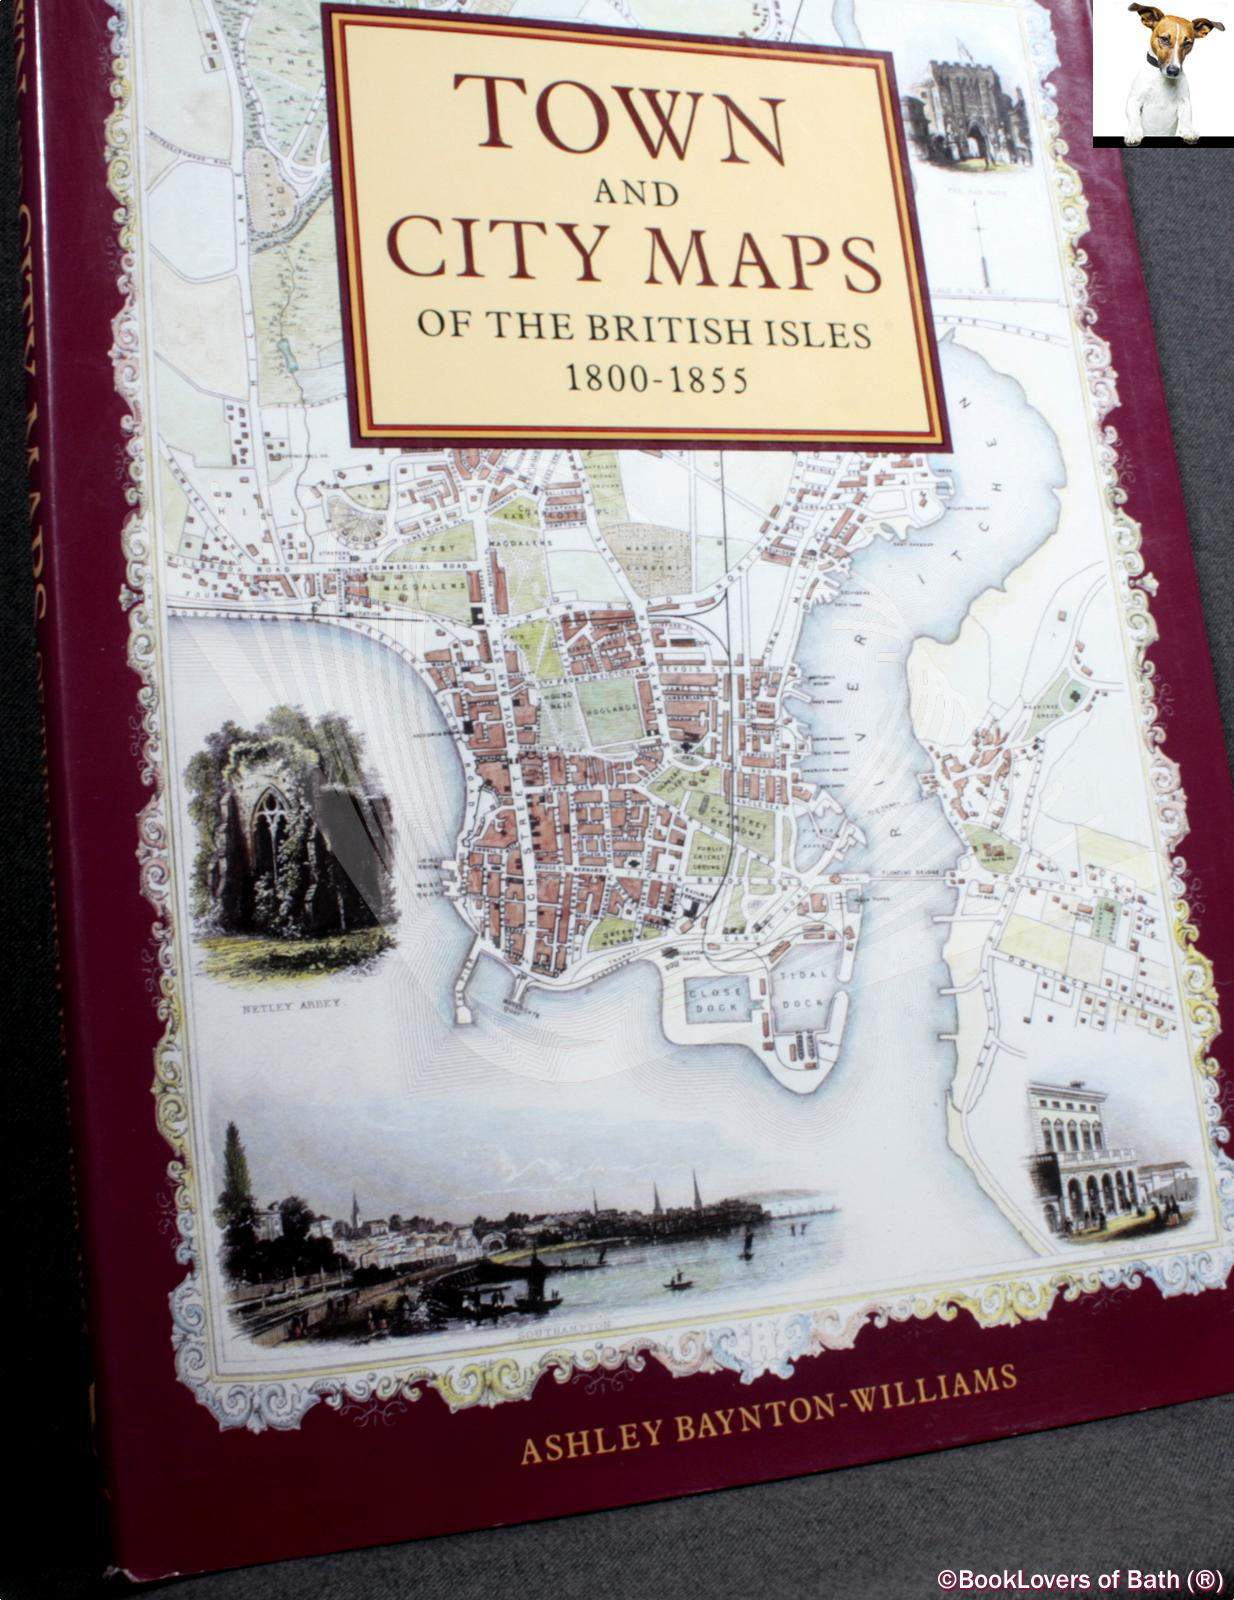 Town and City Maps of the British Isles 1800-1855 - Ashley Baynton-Williams